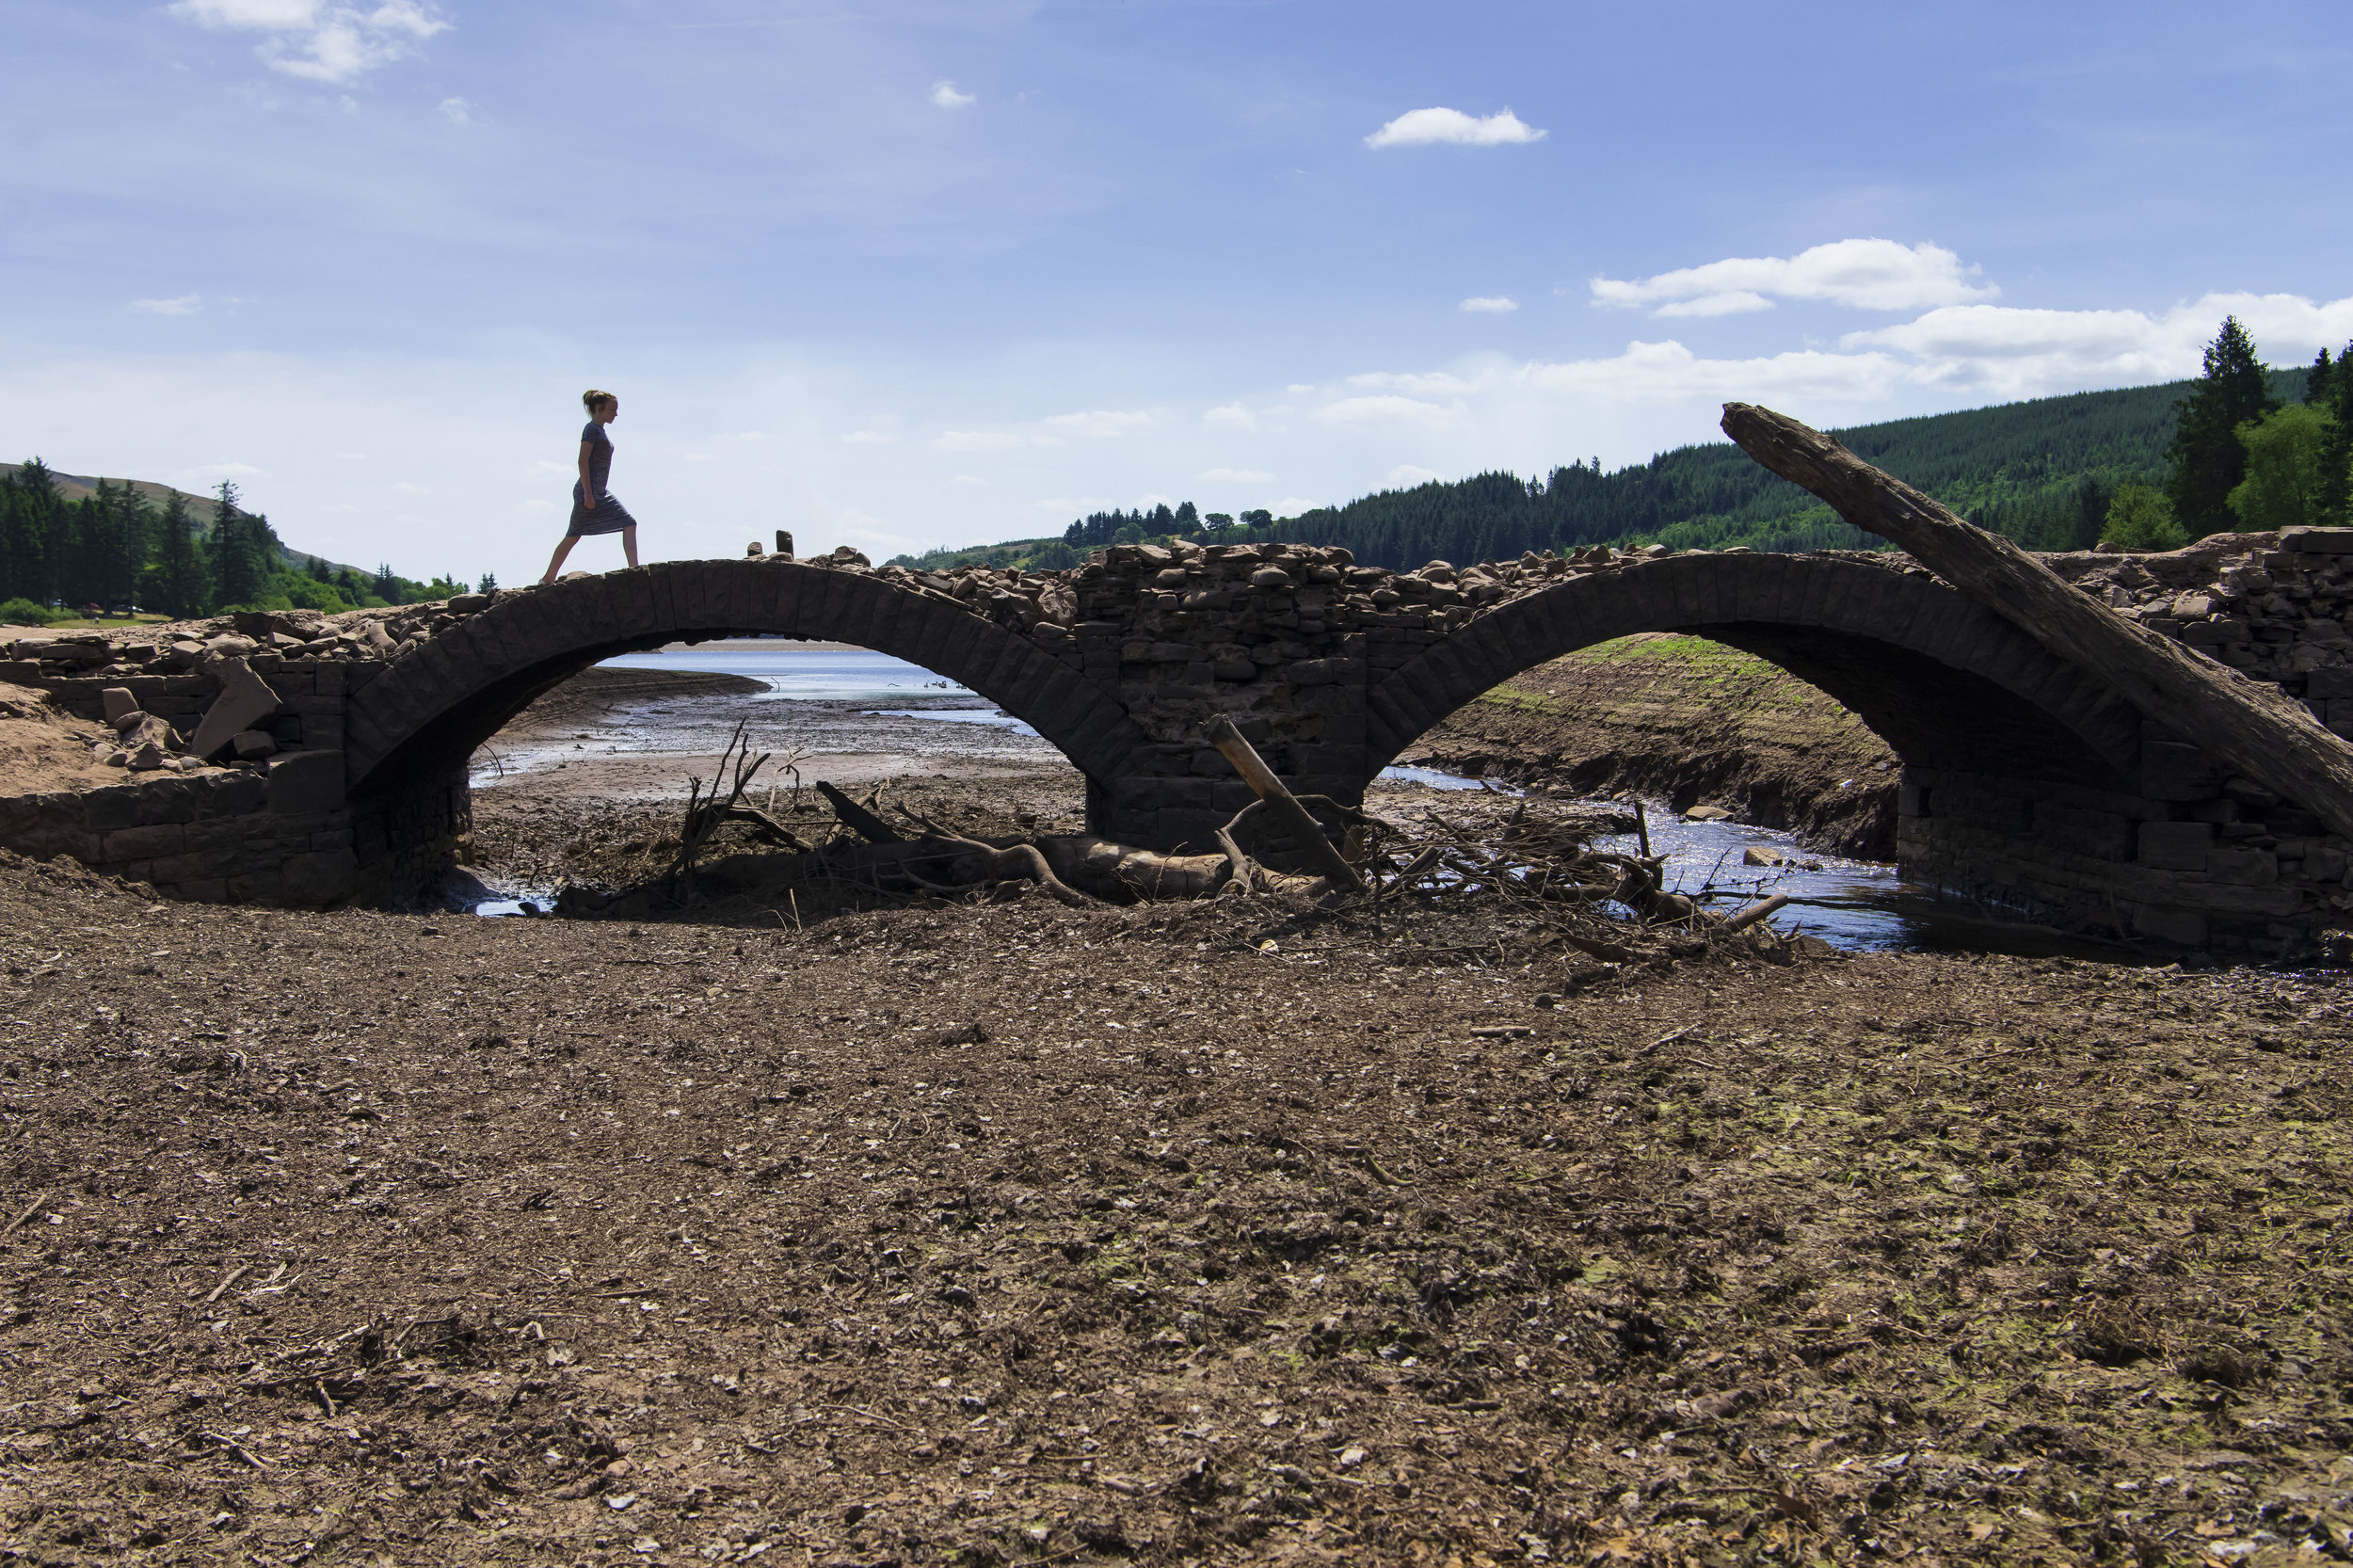 MERTHYR TYDFIL, WALES - JULY 25: A girl crosses a bridge at the Llwyn-on Reservoir, owned by Welsh Water, in the Taf Fawr valley on July 25, 2018 in Merthyr Tydfil, Wales. The lack of rainfall over the last few weeks combined with record breaking temperatures is having a dramatic effect on water levels in reservoirs. (Photo by Matthew Horwood/Getty Images)